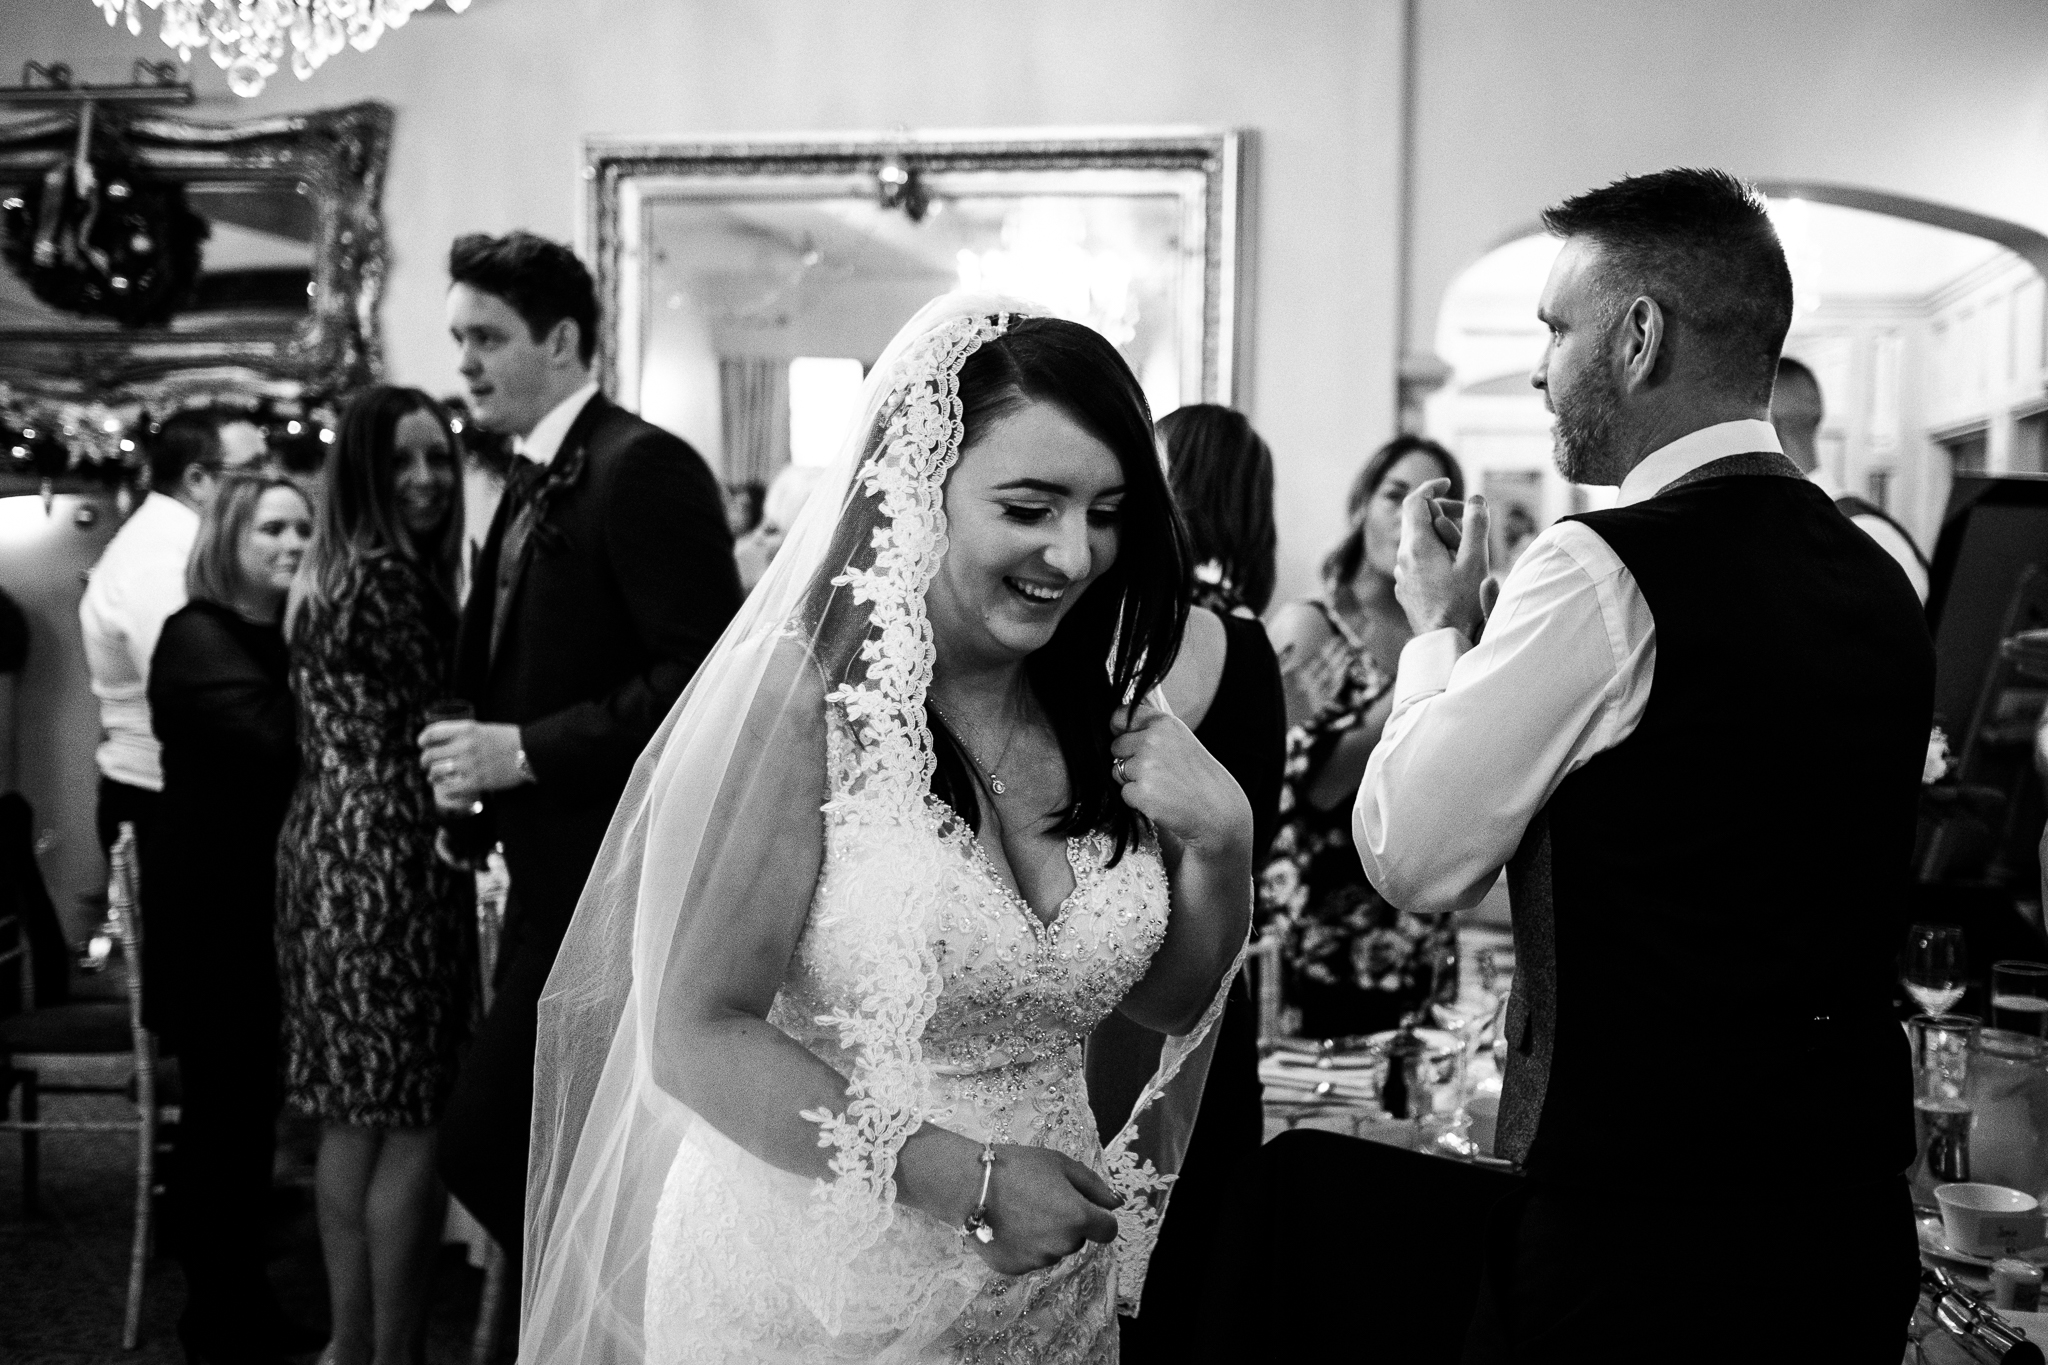 Winter Wedding Christmas Wedding Photography Stafford, Staffordshire Saint Chad Weston Hall Documentary Photographer - Jenny Harper-41.jpg